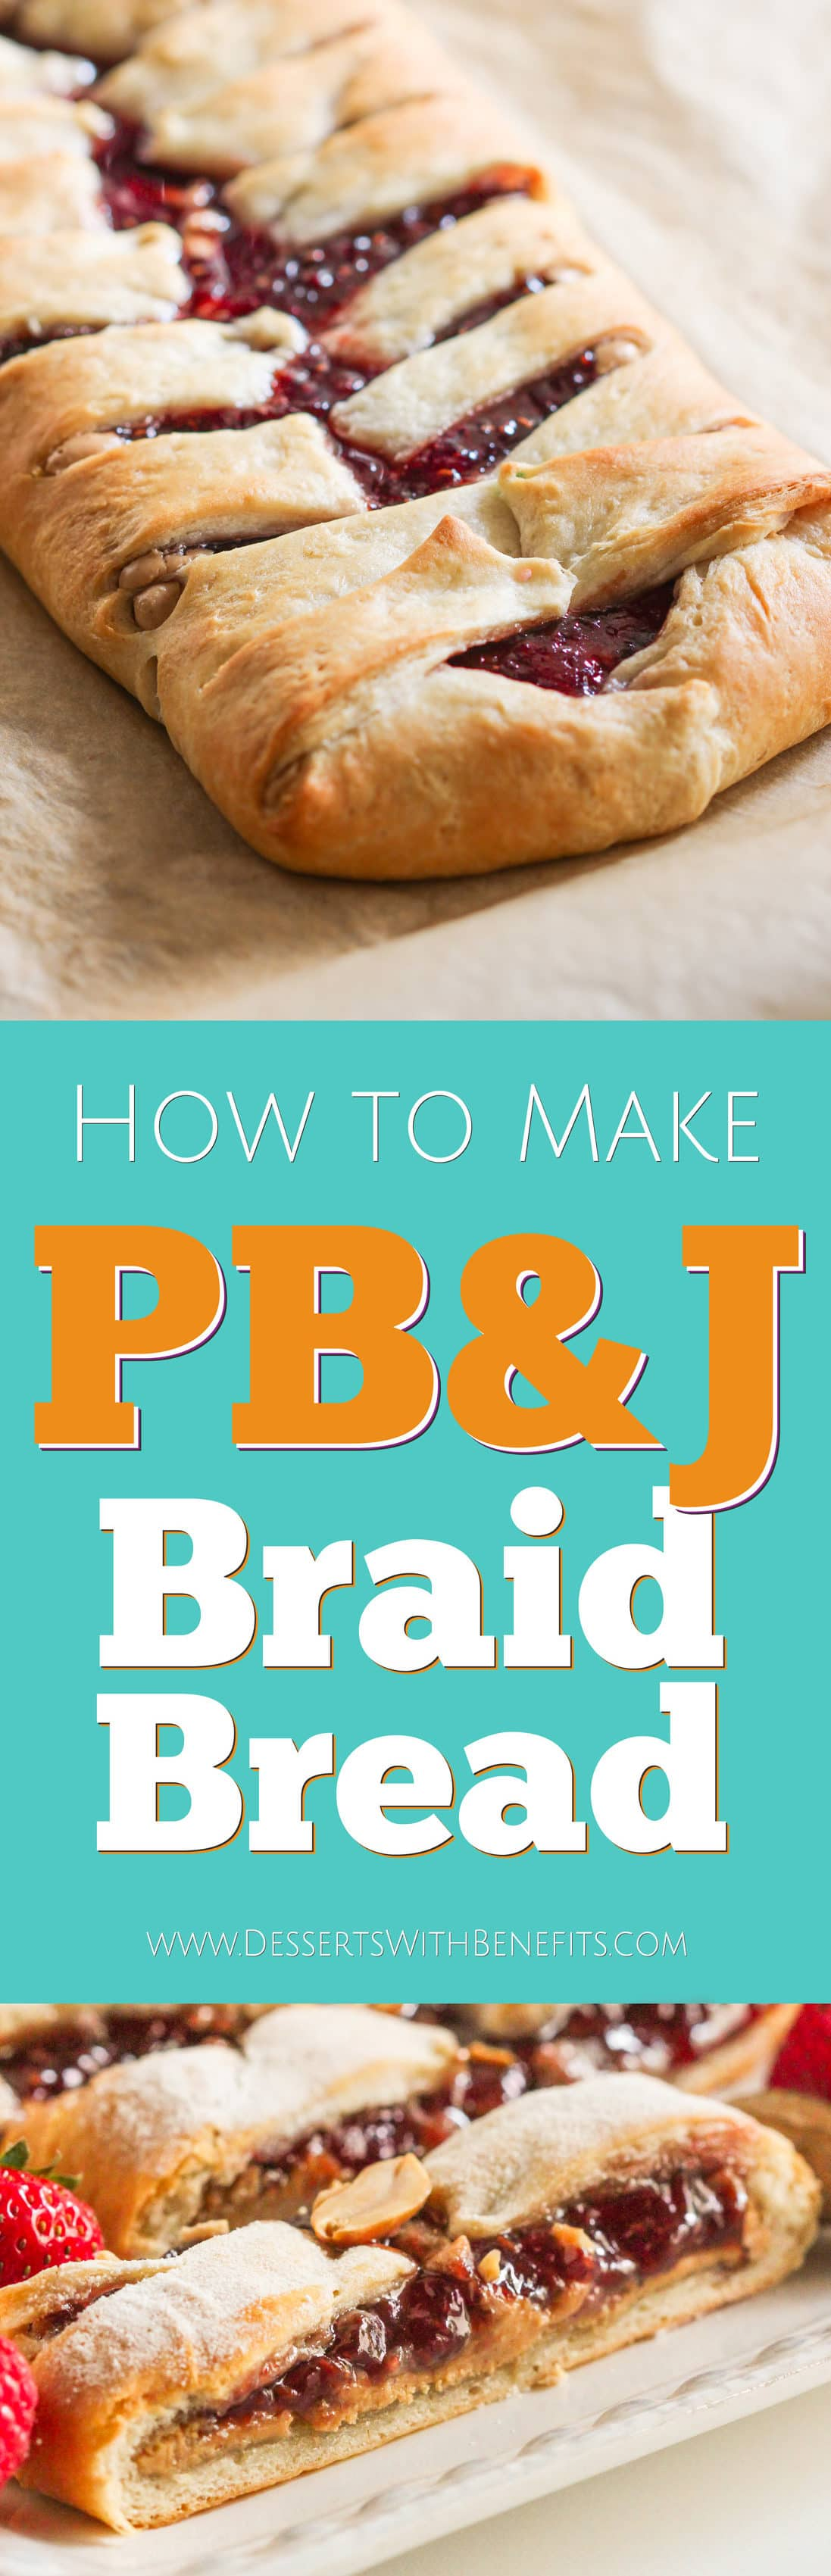 Step up your PB&J game with this easy Peanut Butter and Jelly Braid Bread! It looks difficult to make but took less than 20 minutes to whip together. Oh, and it's vegan, all natural, and has no sugar added – perfect as a tasty, back to school lunchbox snack! Healthy Dessert Recipes with sugar free, low calorie, low fat, low carb, high protein, gluten free, dairy free, vegan, and raw options at the Desserts With Benefits Blog.